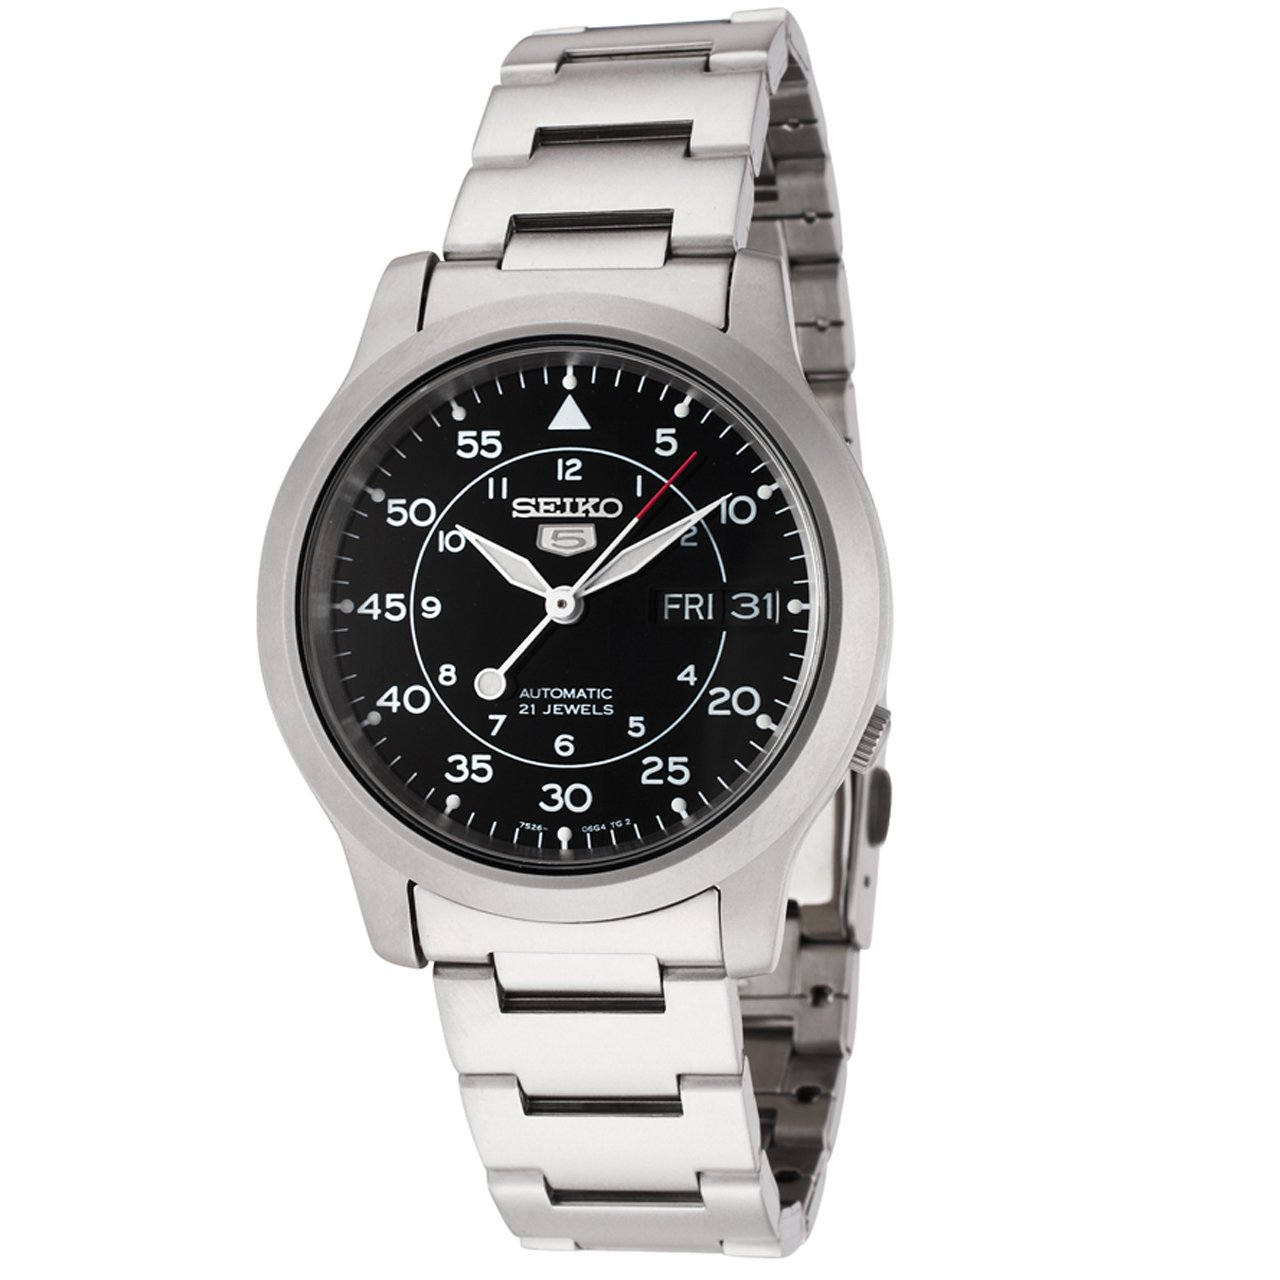 Seiko Men S Analogue Automatic Watch With Stainless Steel Strap